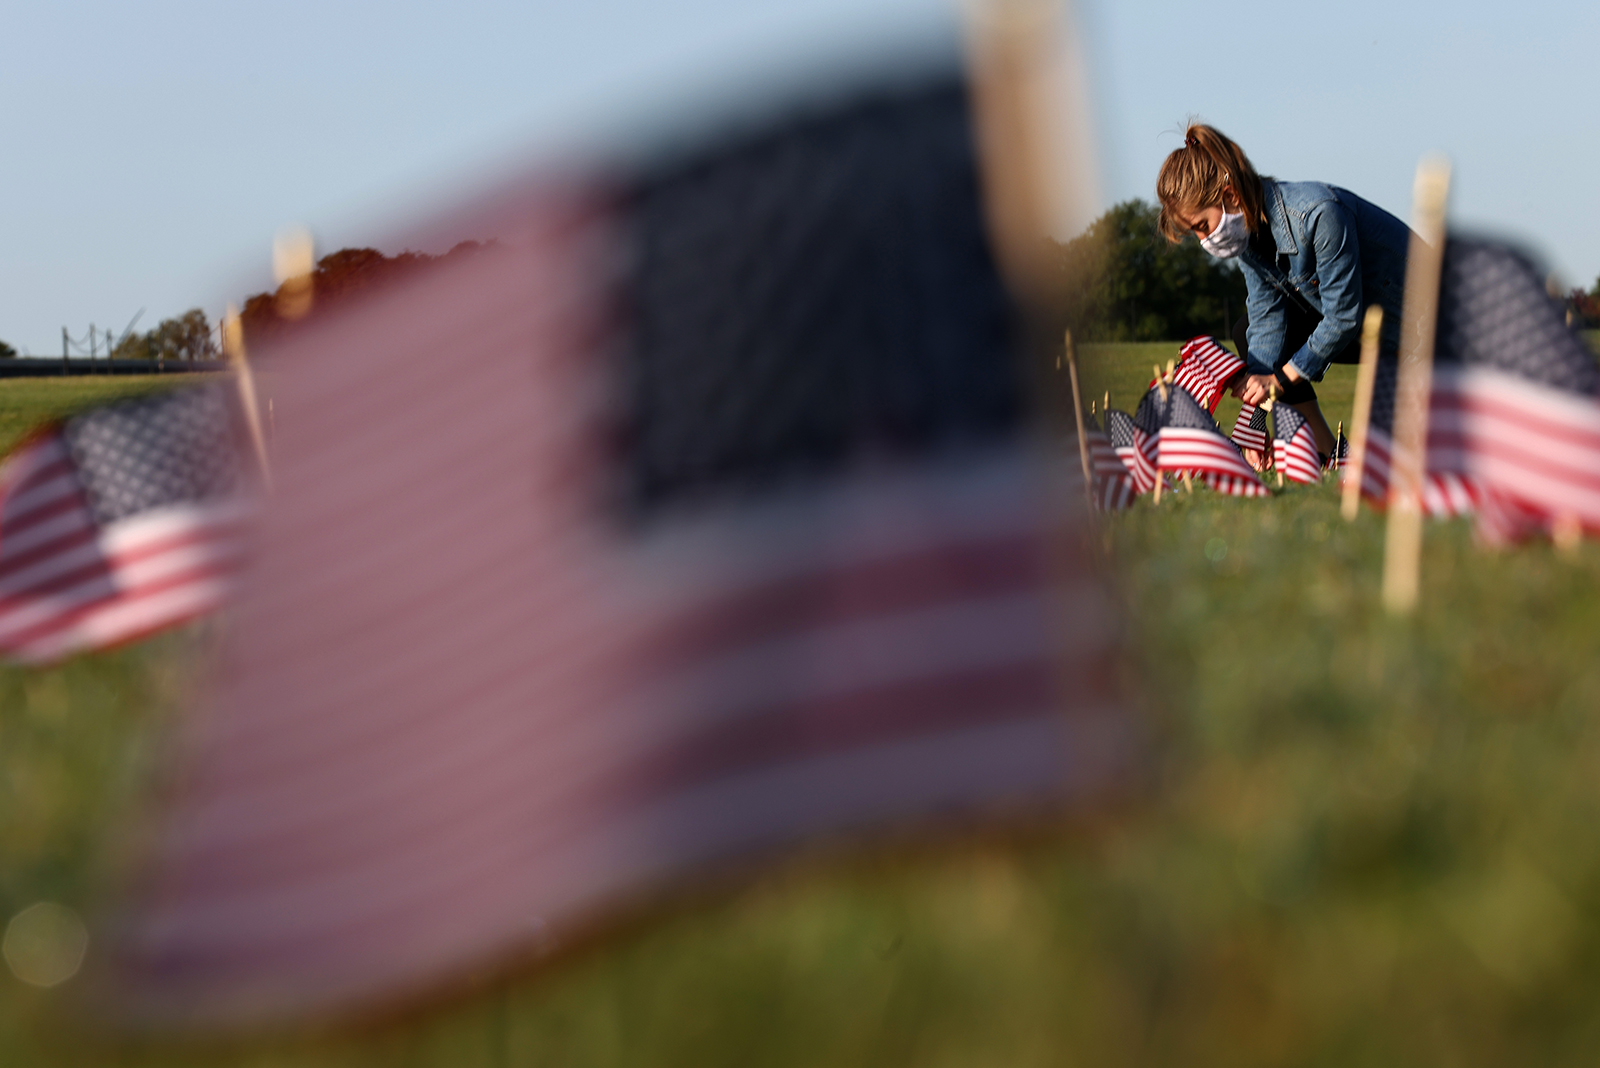 A woman places flags at a COVID Memorial Project installation of 20,000 American flags on the National Mall in Washington, DC, on September 22. The flags are displayed on the grounds of the Washington Monument facing the White House.